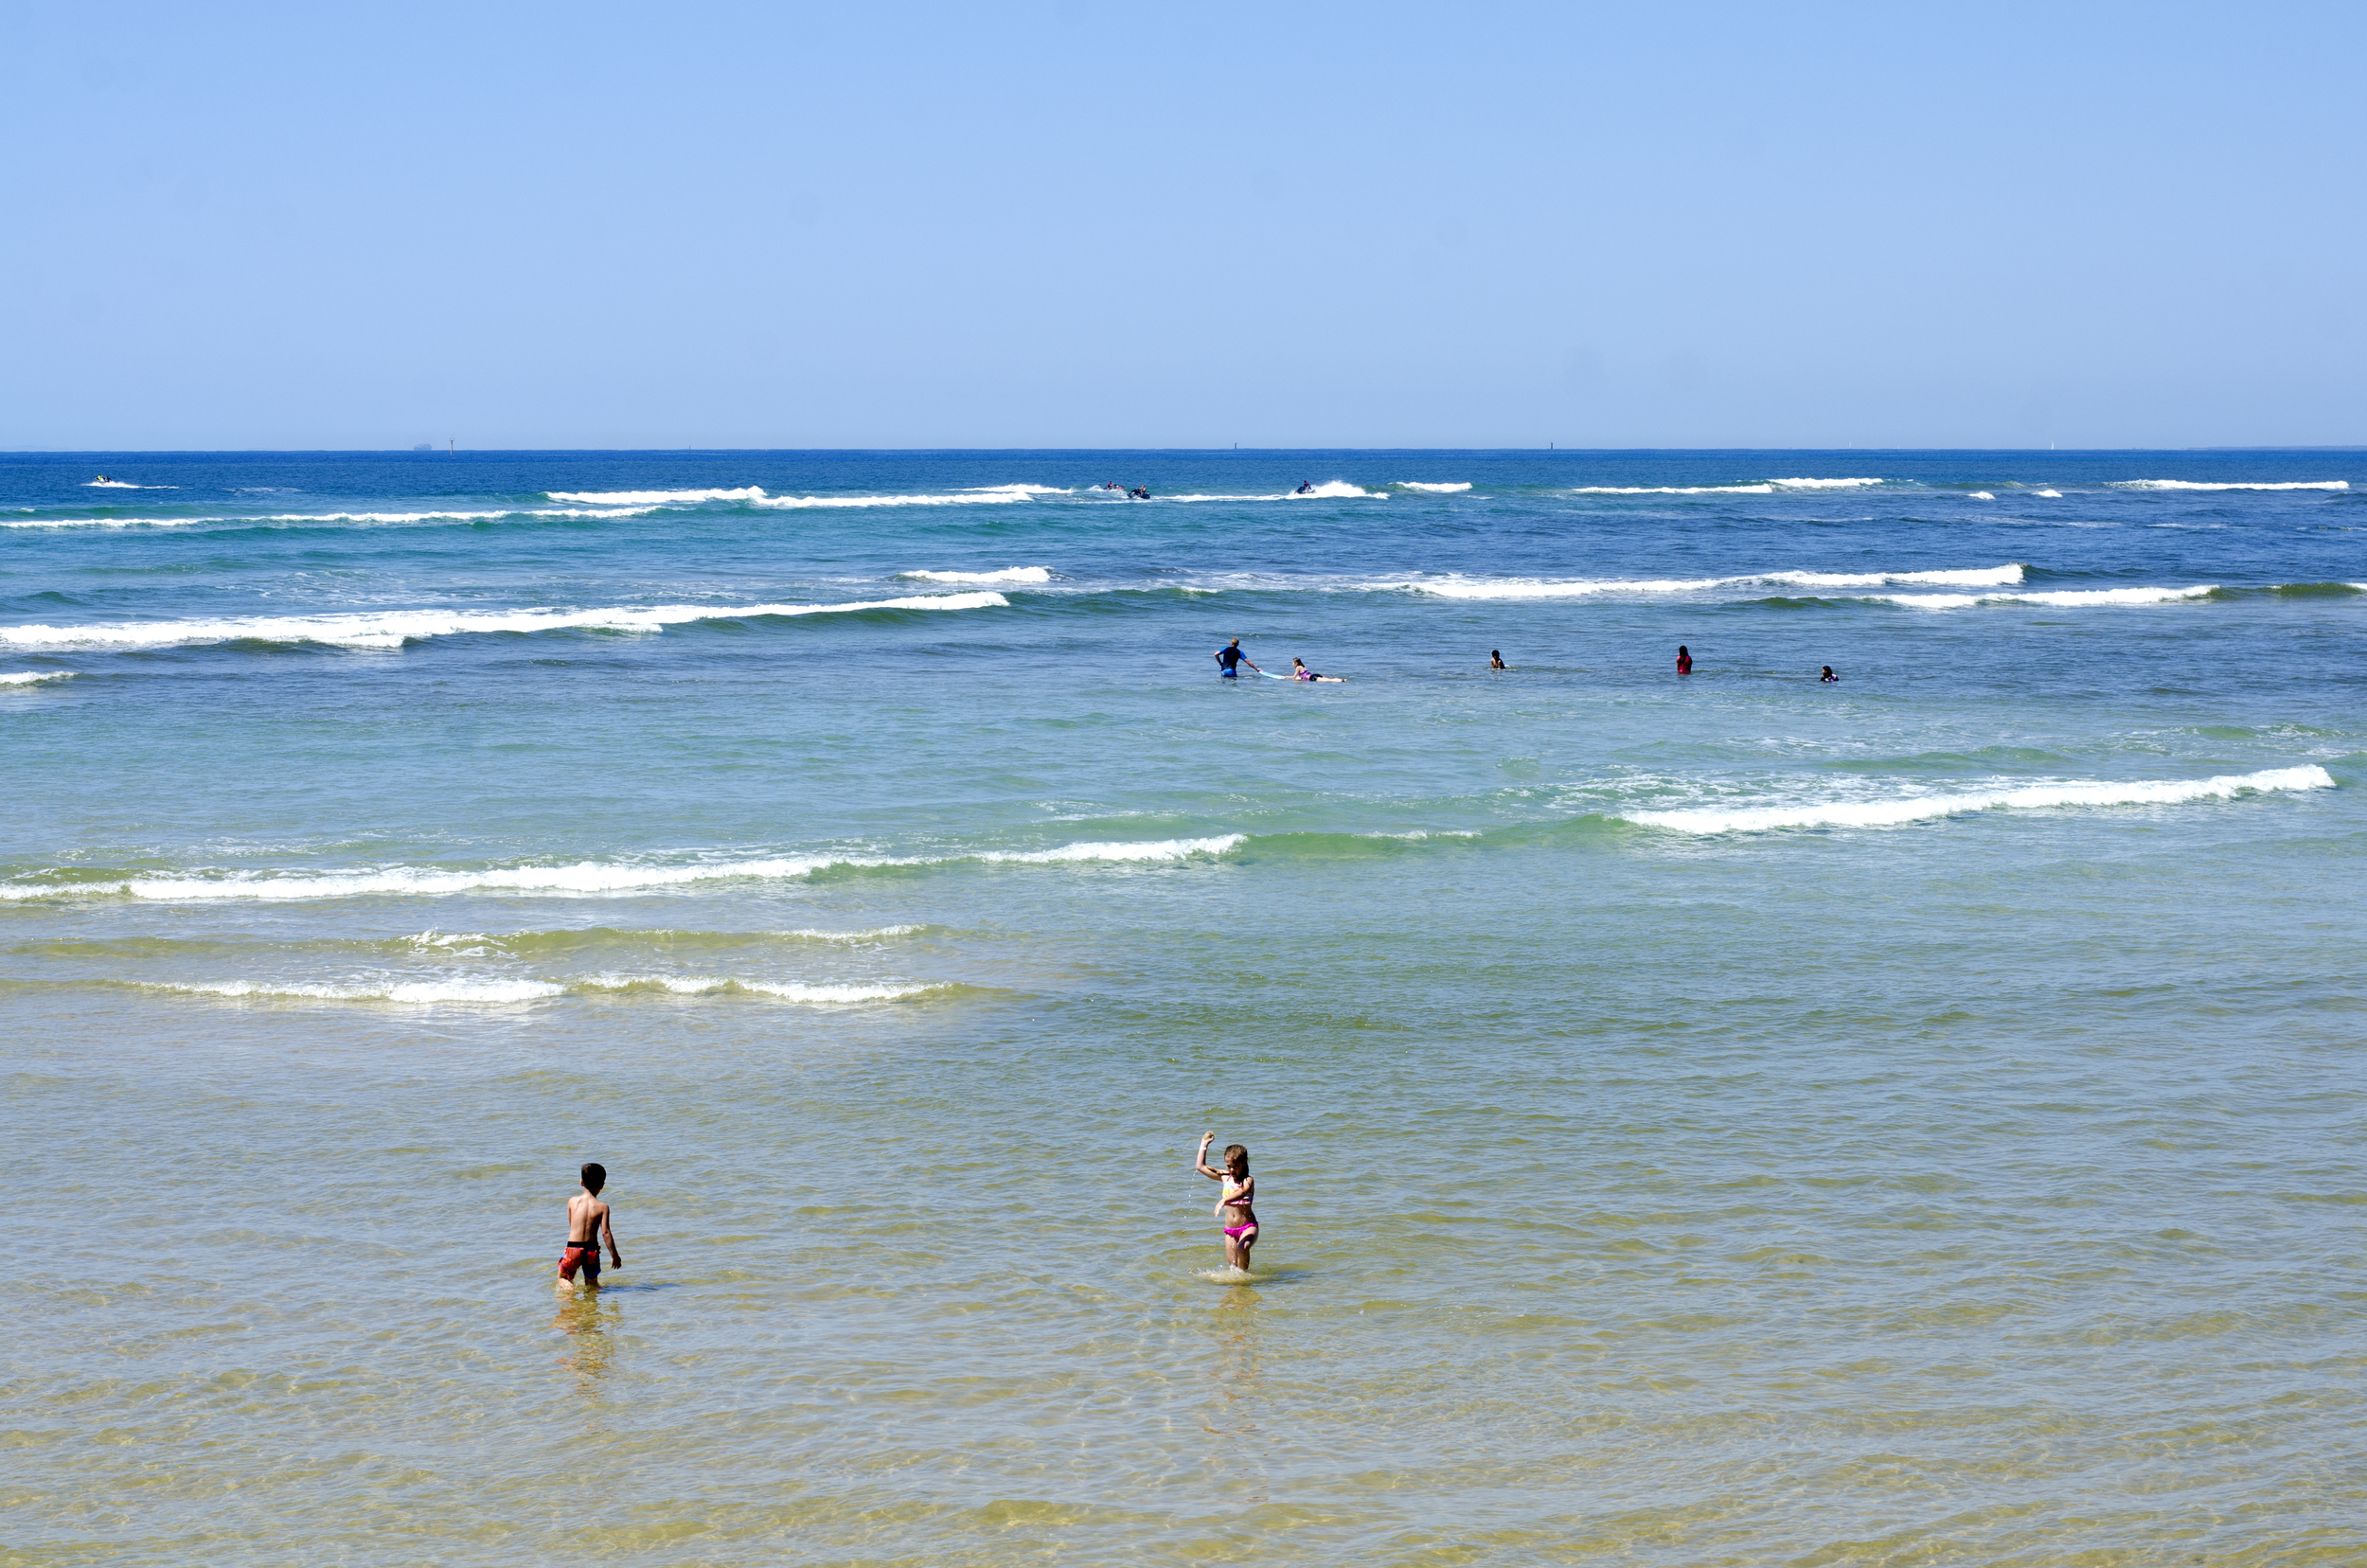 Like Currumbin,Caloundra had some great calm, shallow areas perfect for kids